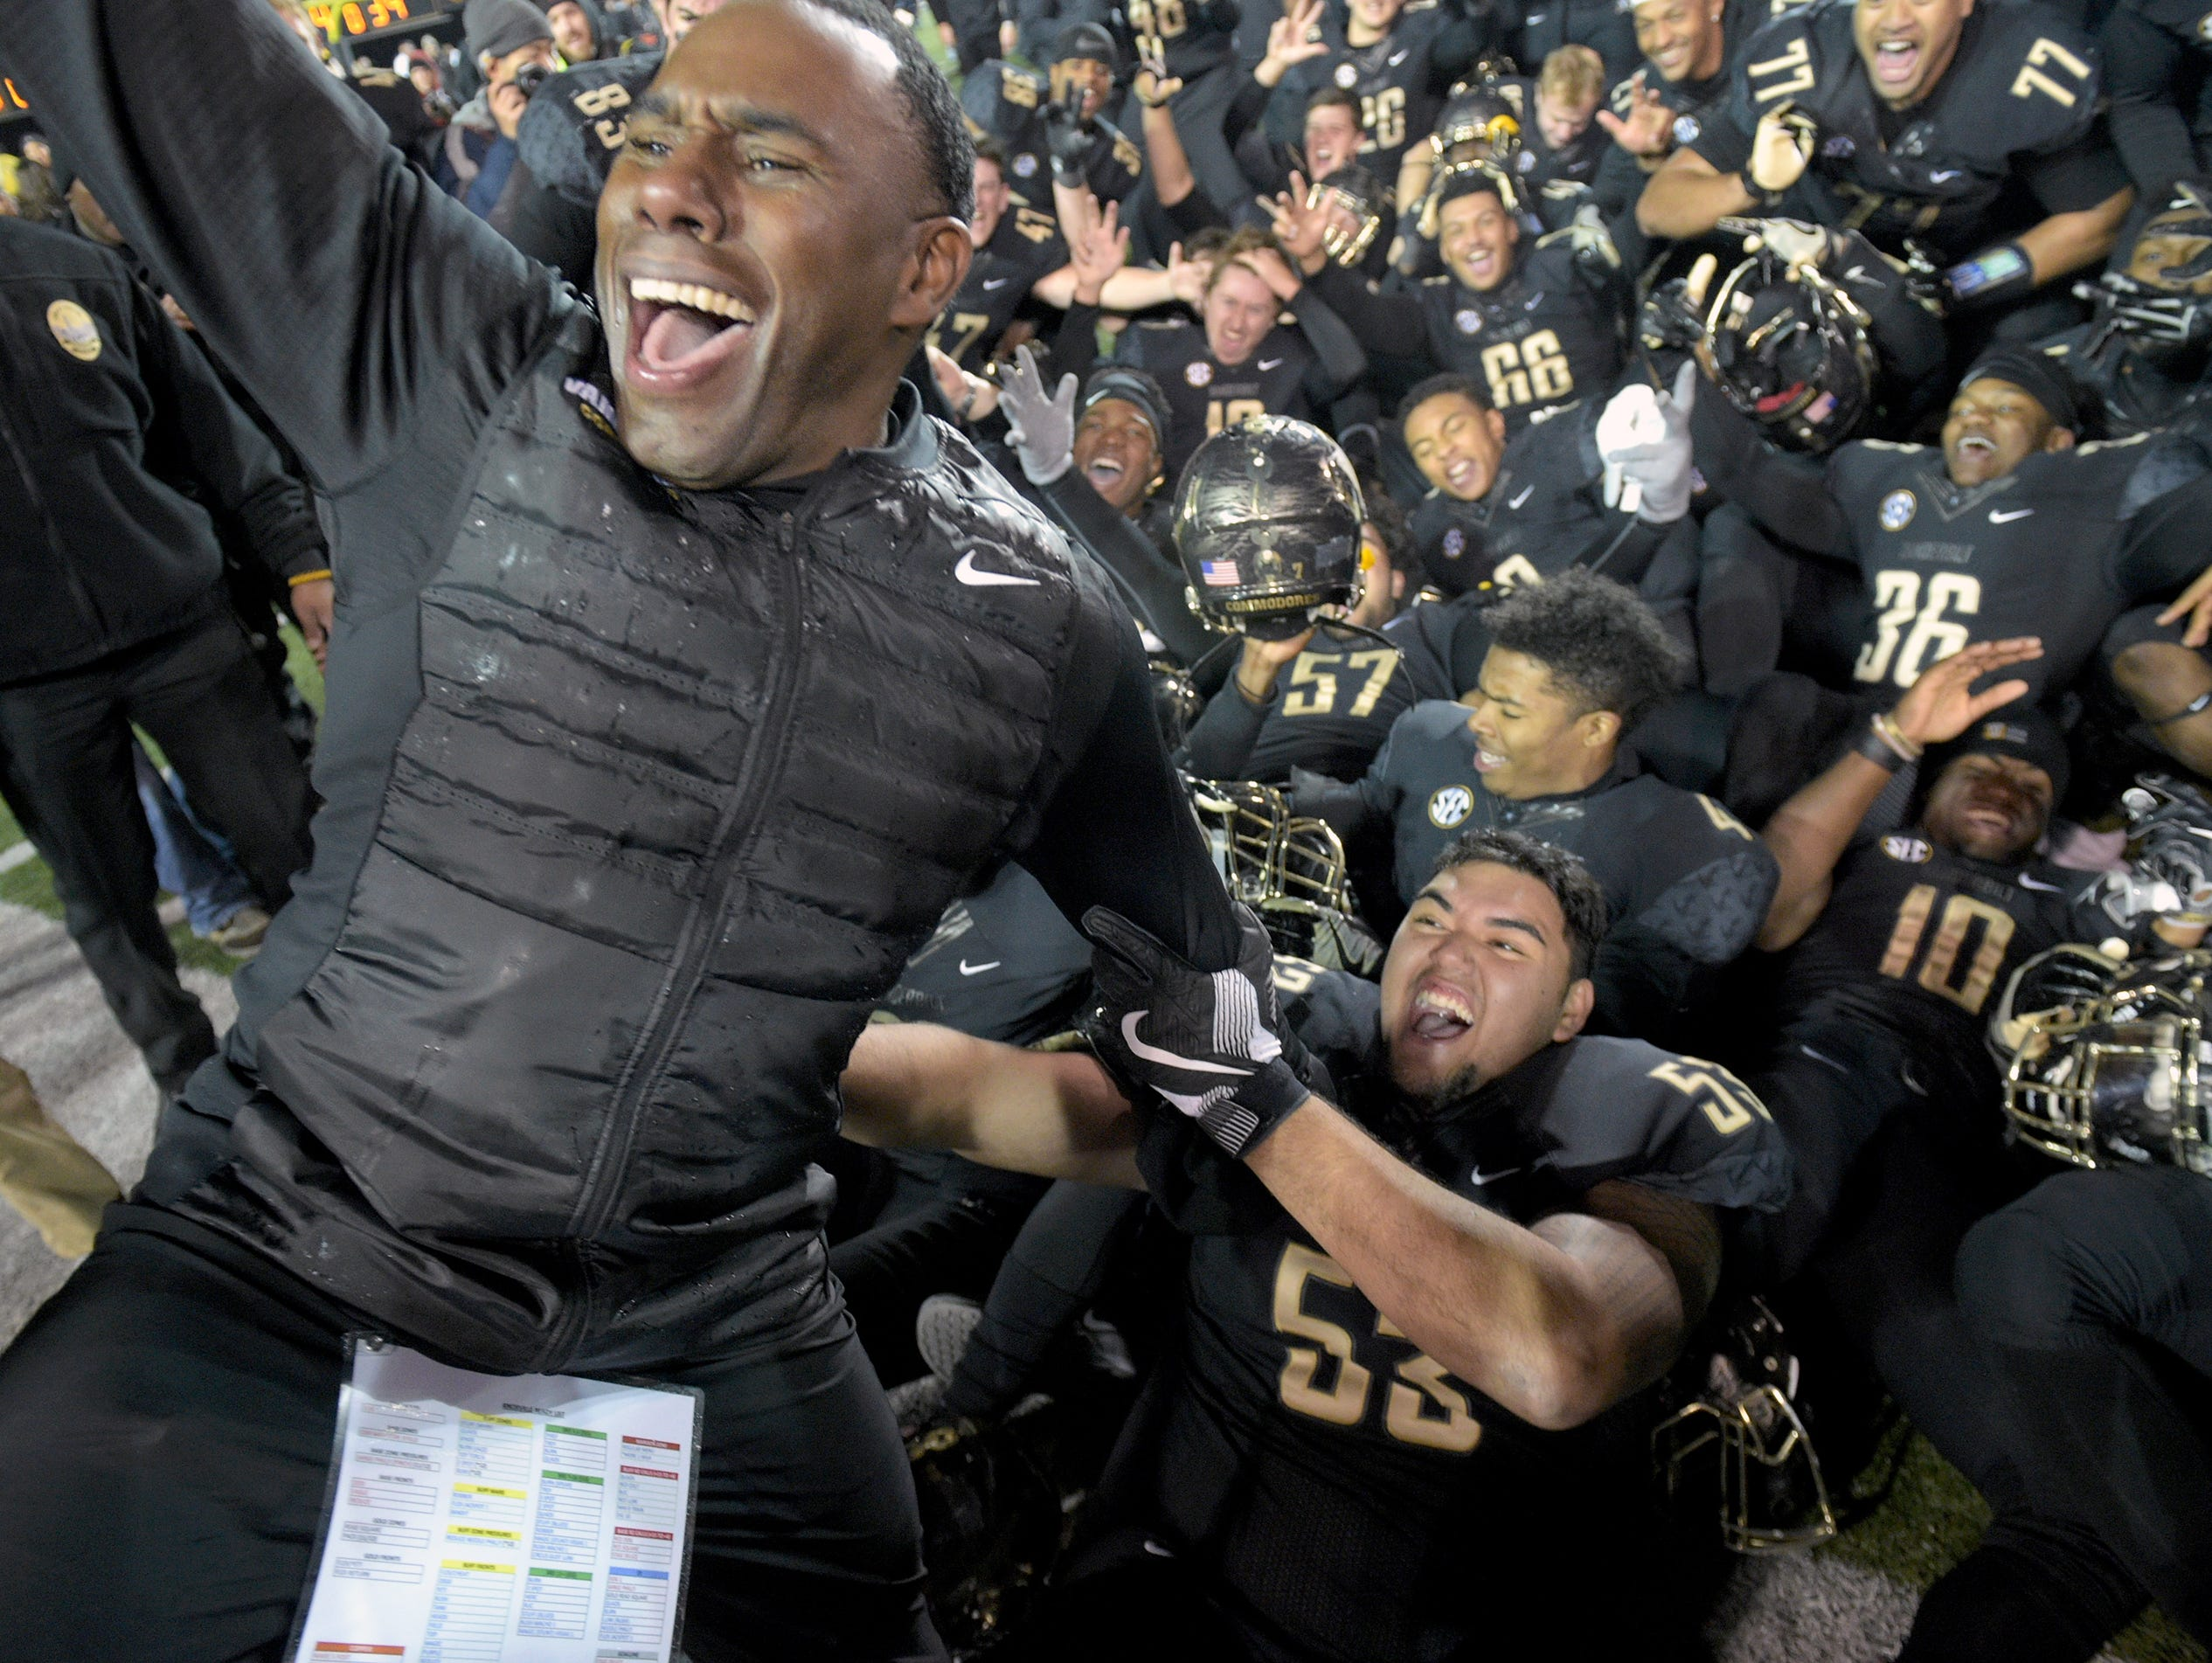 Vanderbilt coach Derek Mason celebrates his team's 45-34 upset win over 24th-ranked Tennessee on Nov. 26, 2016, at Vanderbilt Stadium.